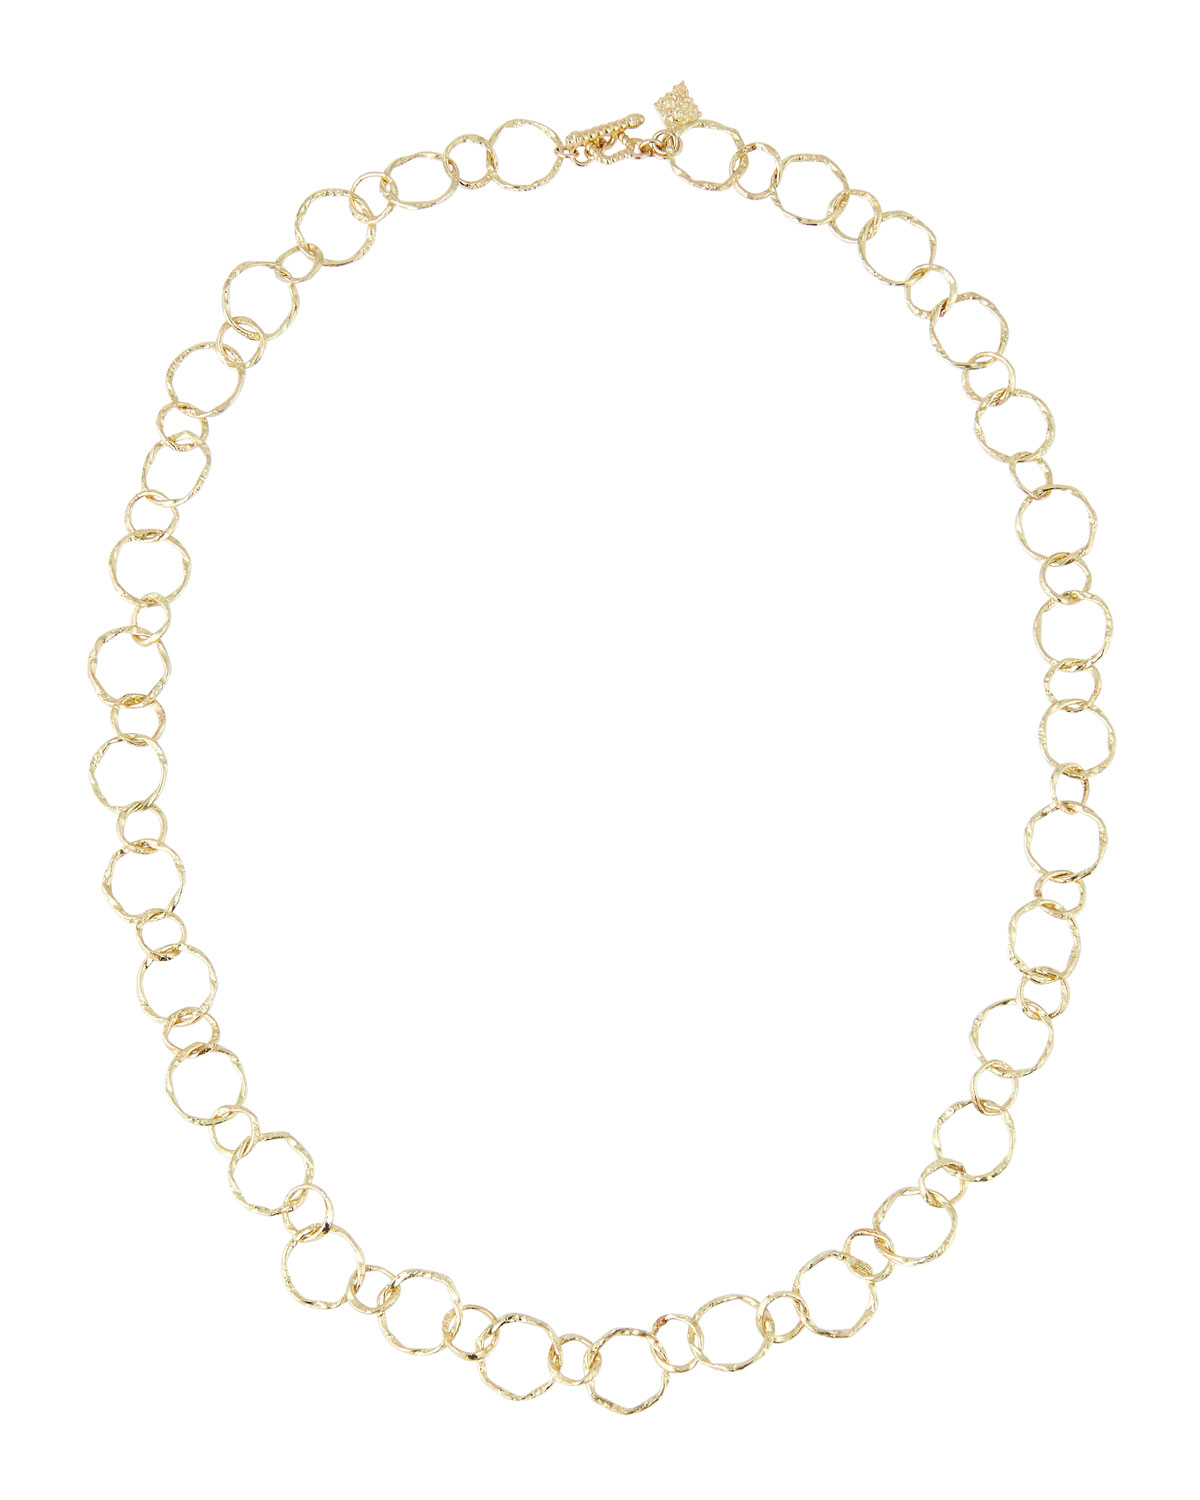 Armenta Accessories 18K YELLOW GOLD CIRCLE NECKLACE, 18""